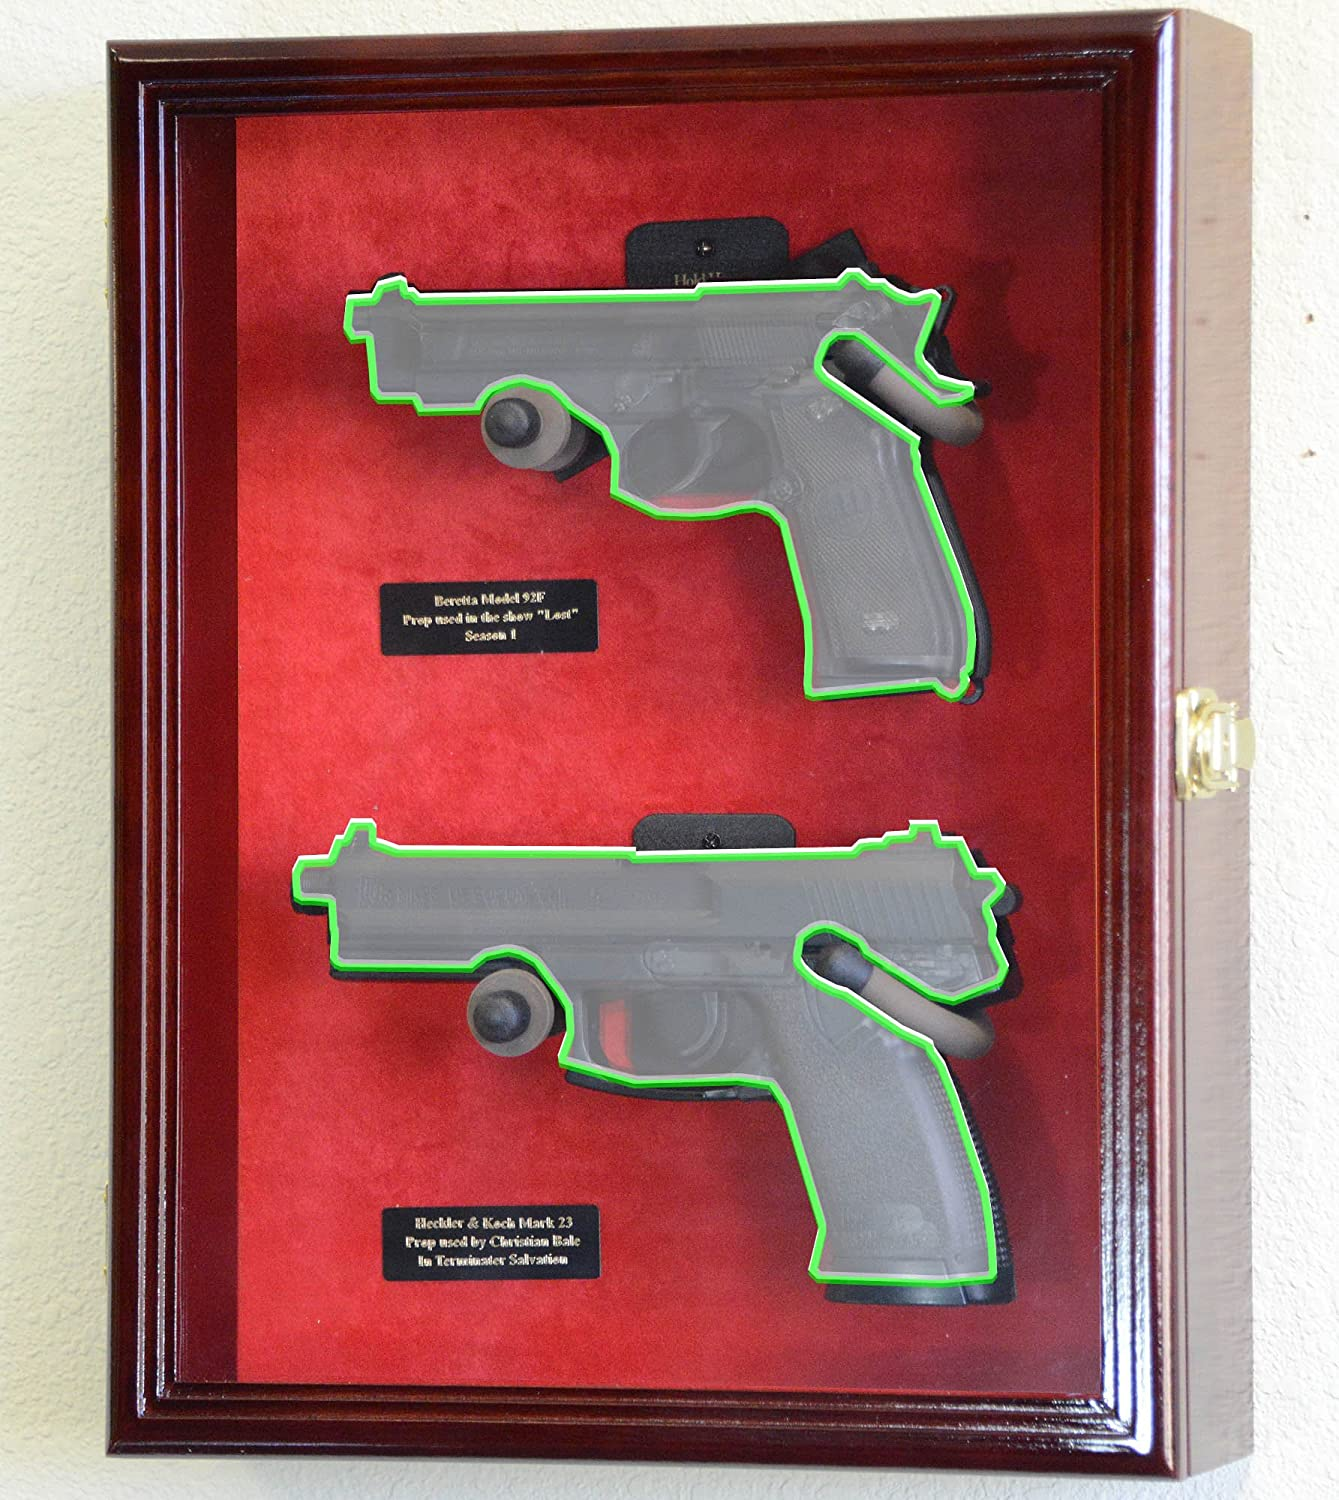 Amazon.com : Large/ Double 2 Pistol Handgun Revolver Gun Display ...